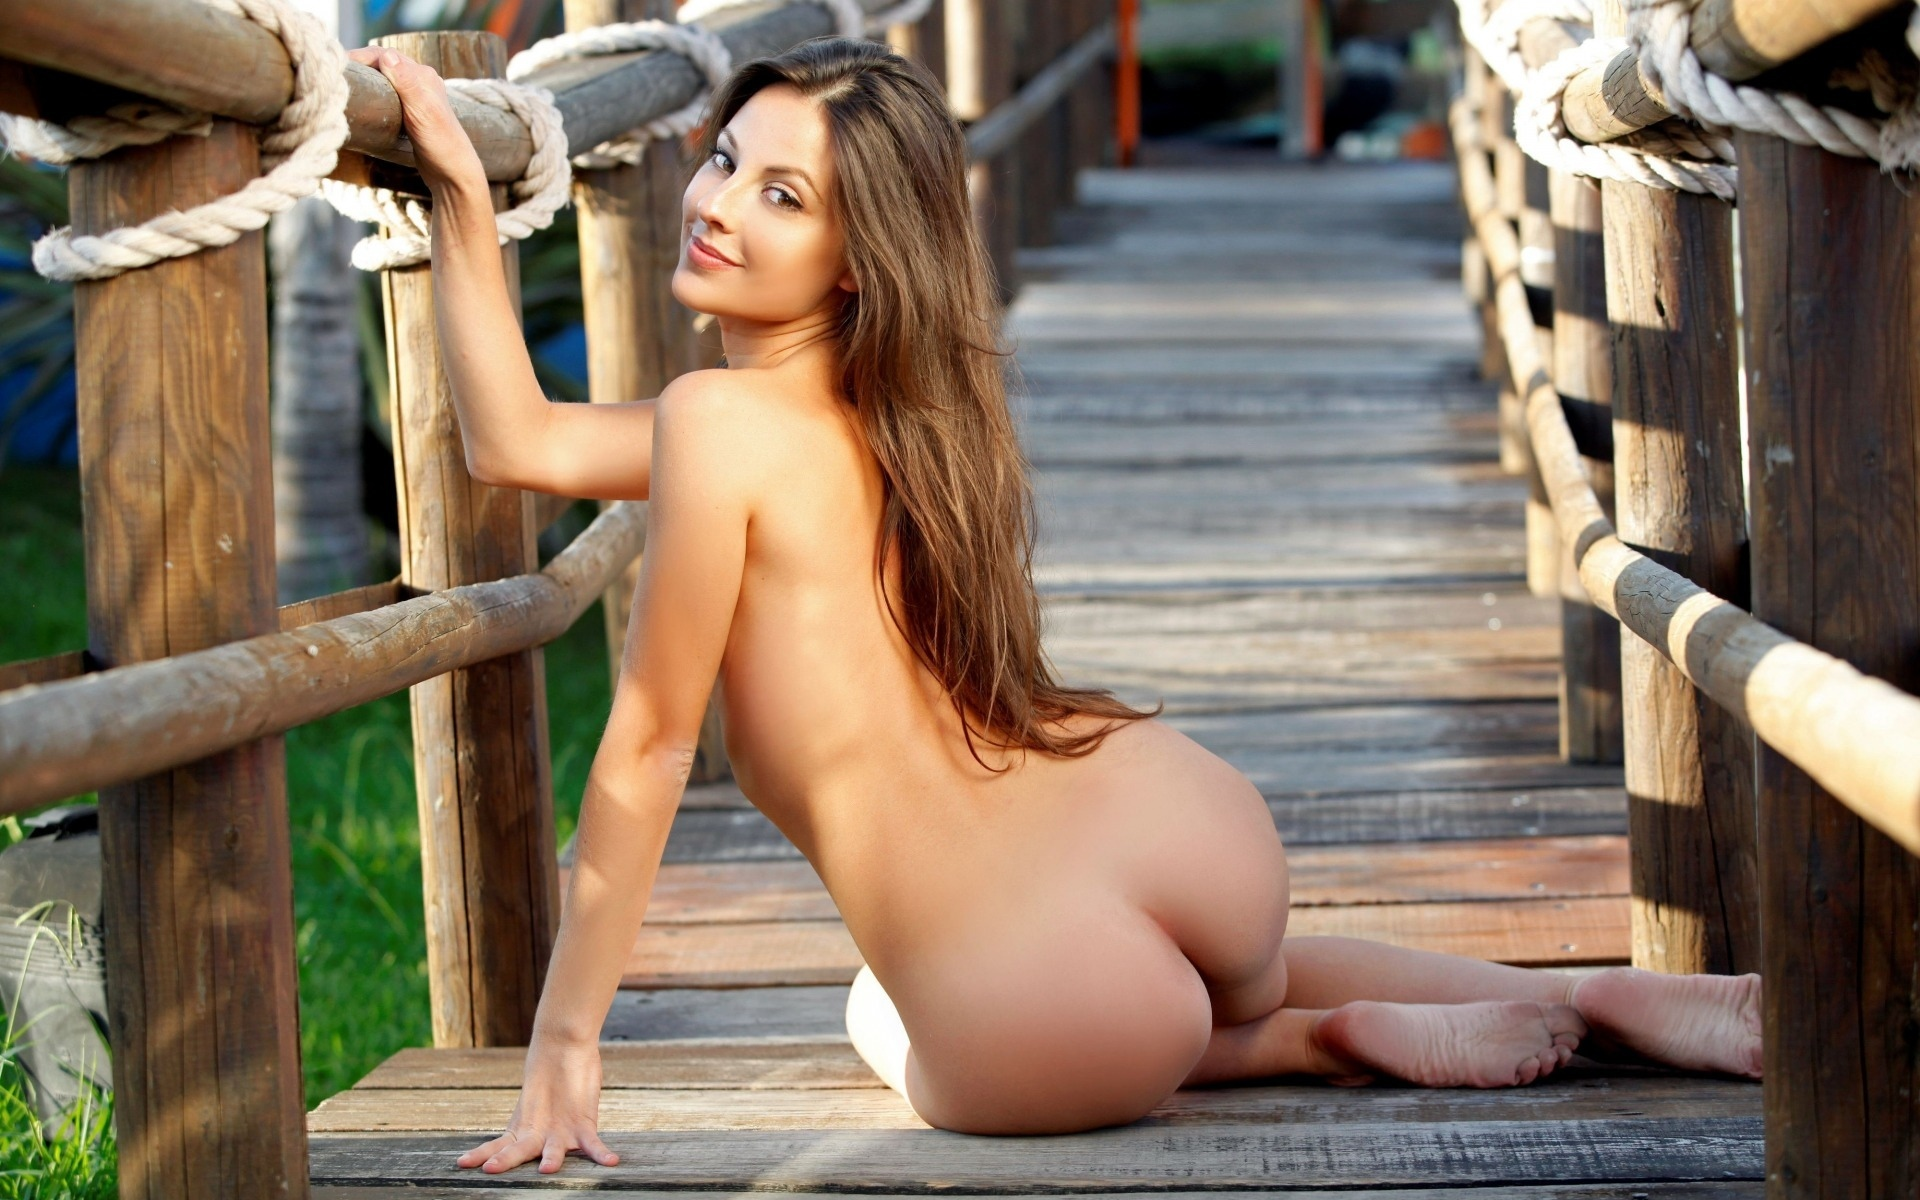 High res nude photos porn stars